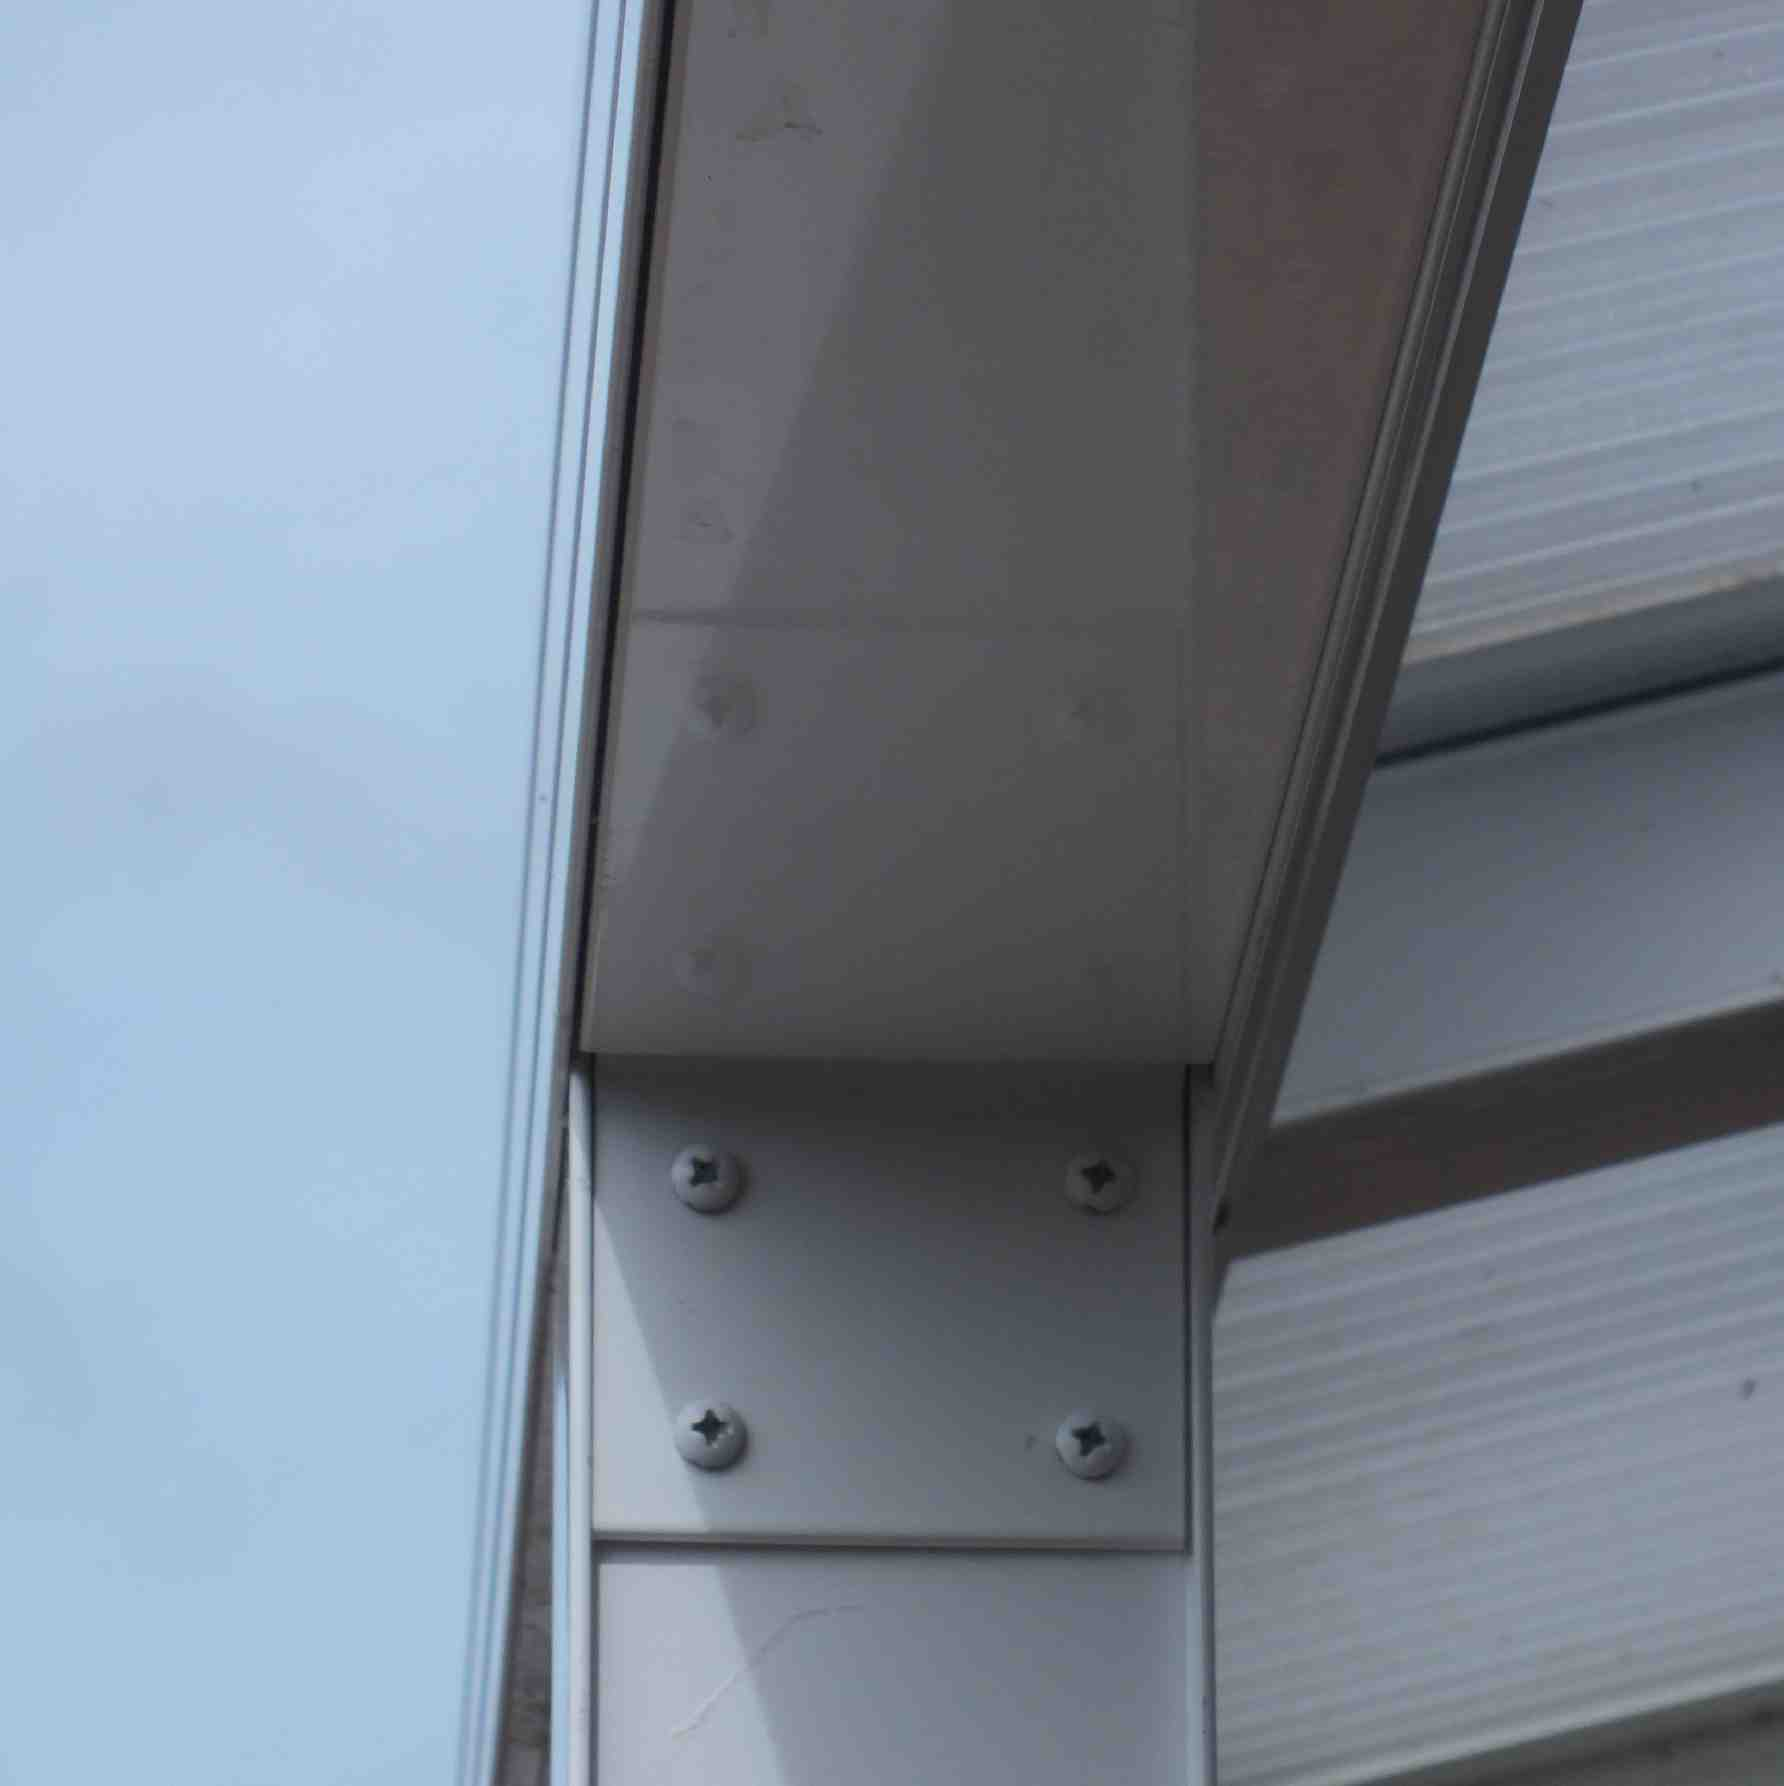 Affordable Omega Verandah with 16mm Polycarbonate Glazing - 6.0m (W) x 4.5m (P), (3) Supporting Posts